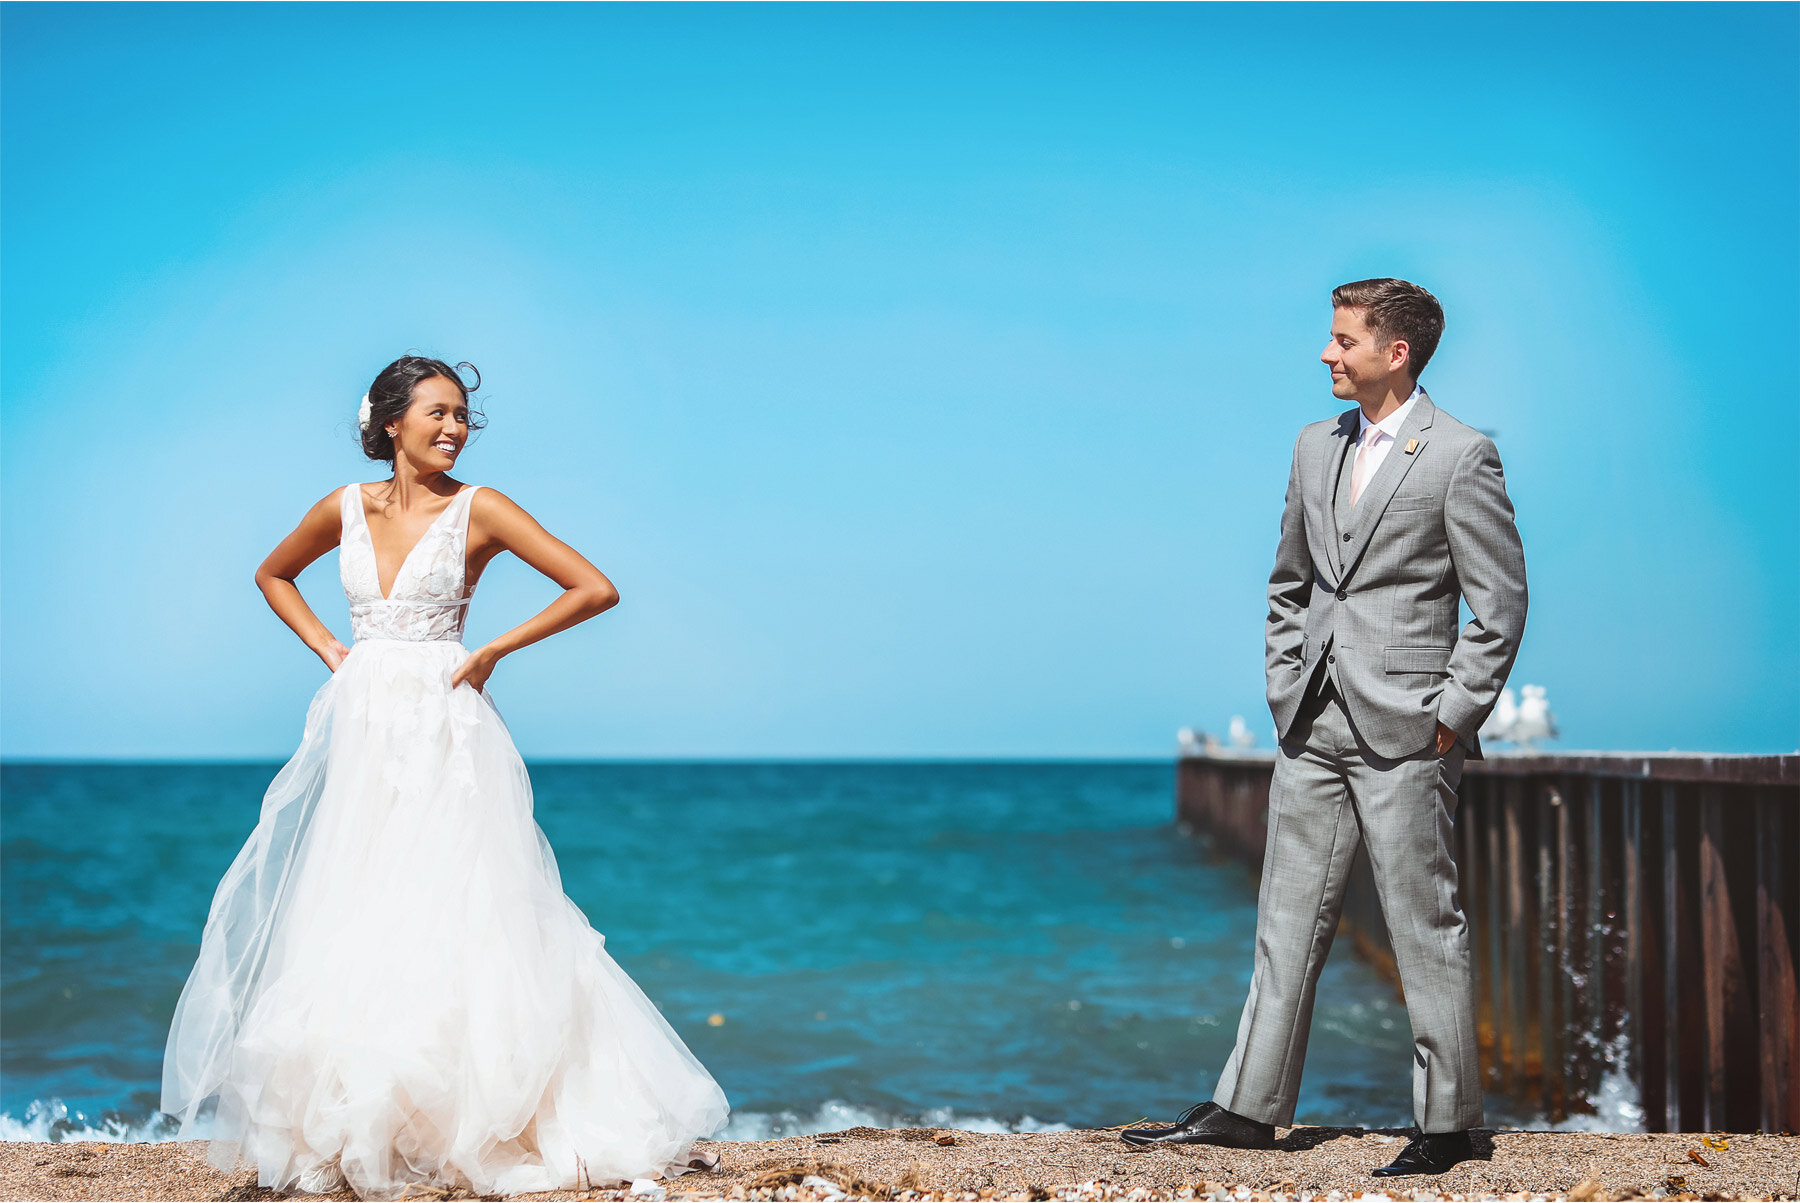 10-Wedding-by-Andrew-Vick-Photography-Chicago-Illinois-Groom-Bride-Shore-Beach-Lake-Michigan-Ashley-and-Nicholas.jpg